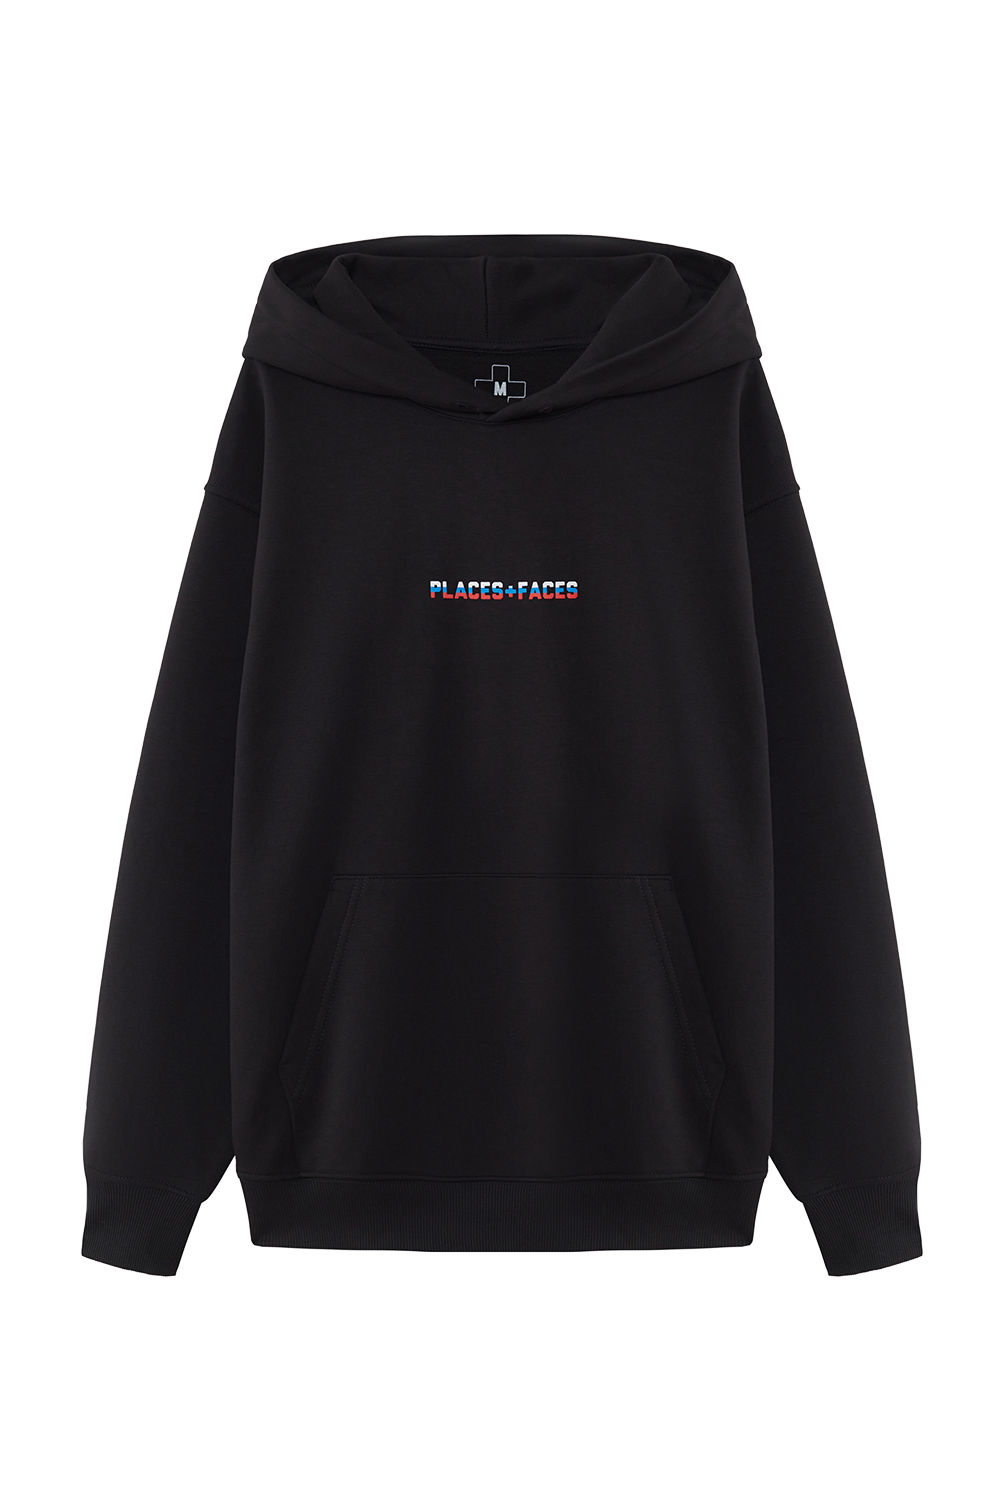 PLACES+FACES Black Hoodie